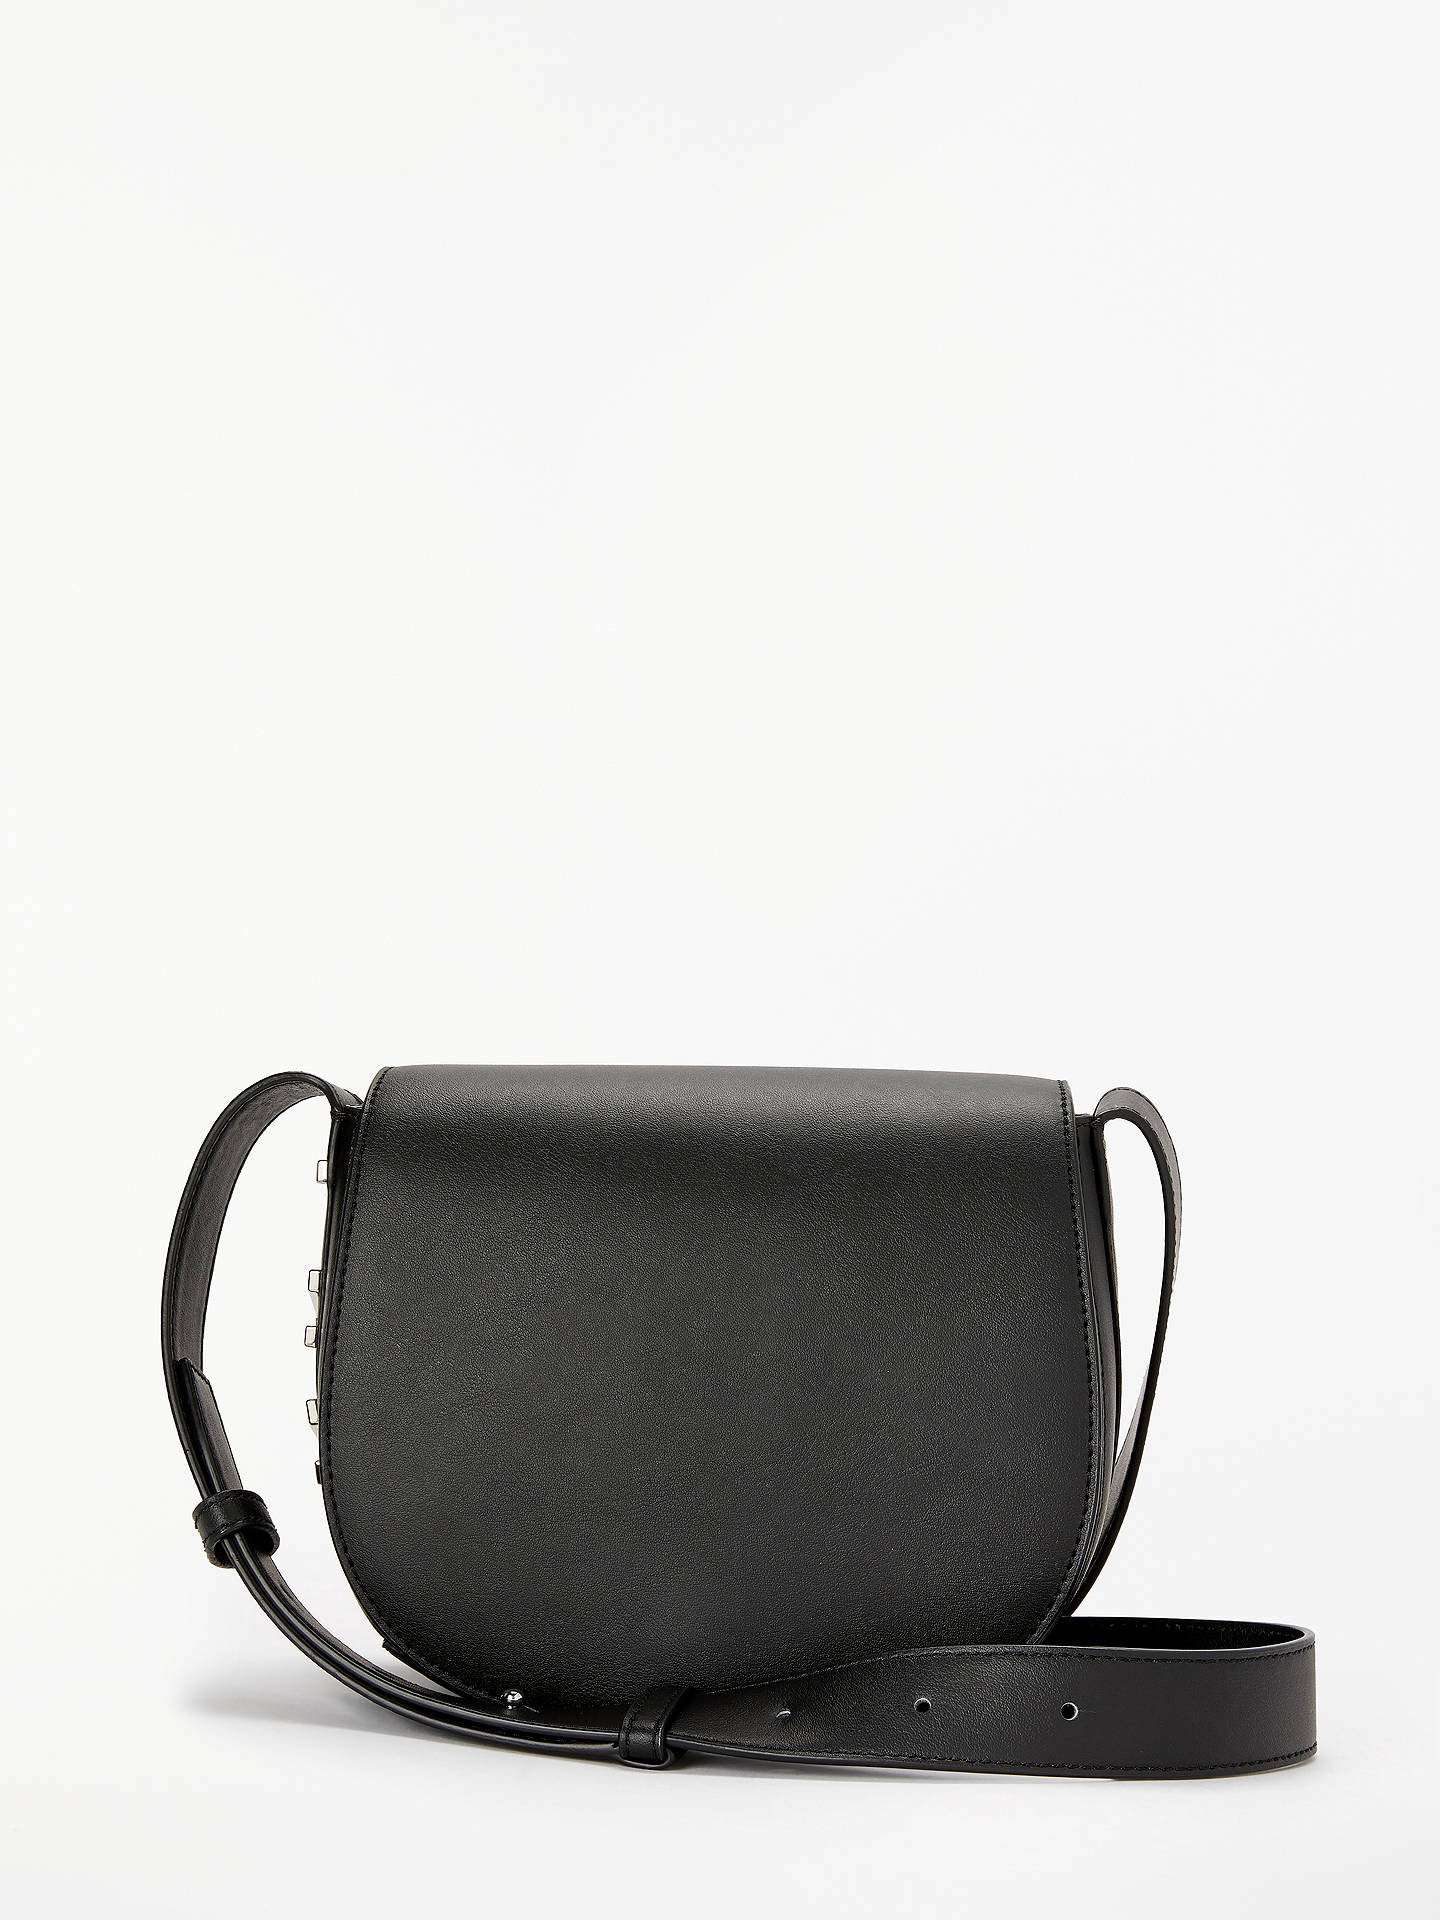 discount for sale 2018 shoes unequal in performance DKNY Bedford Leather Saddle Cross Body Bag, Black